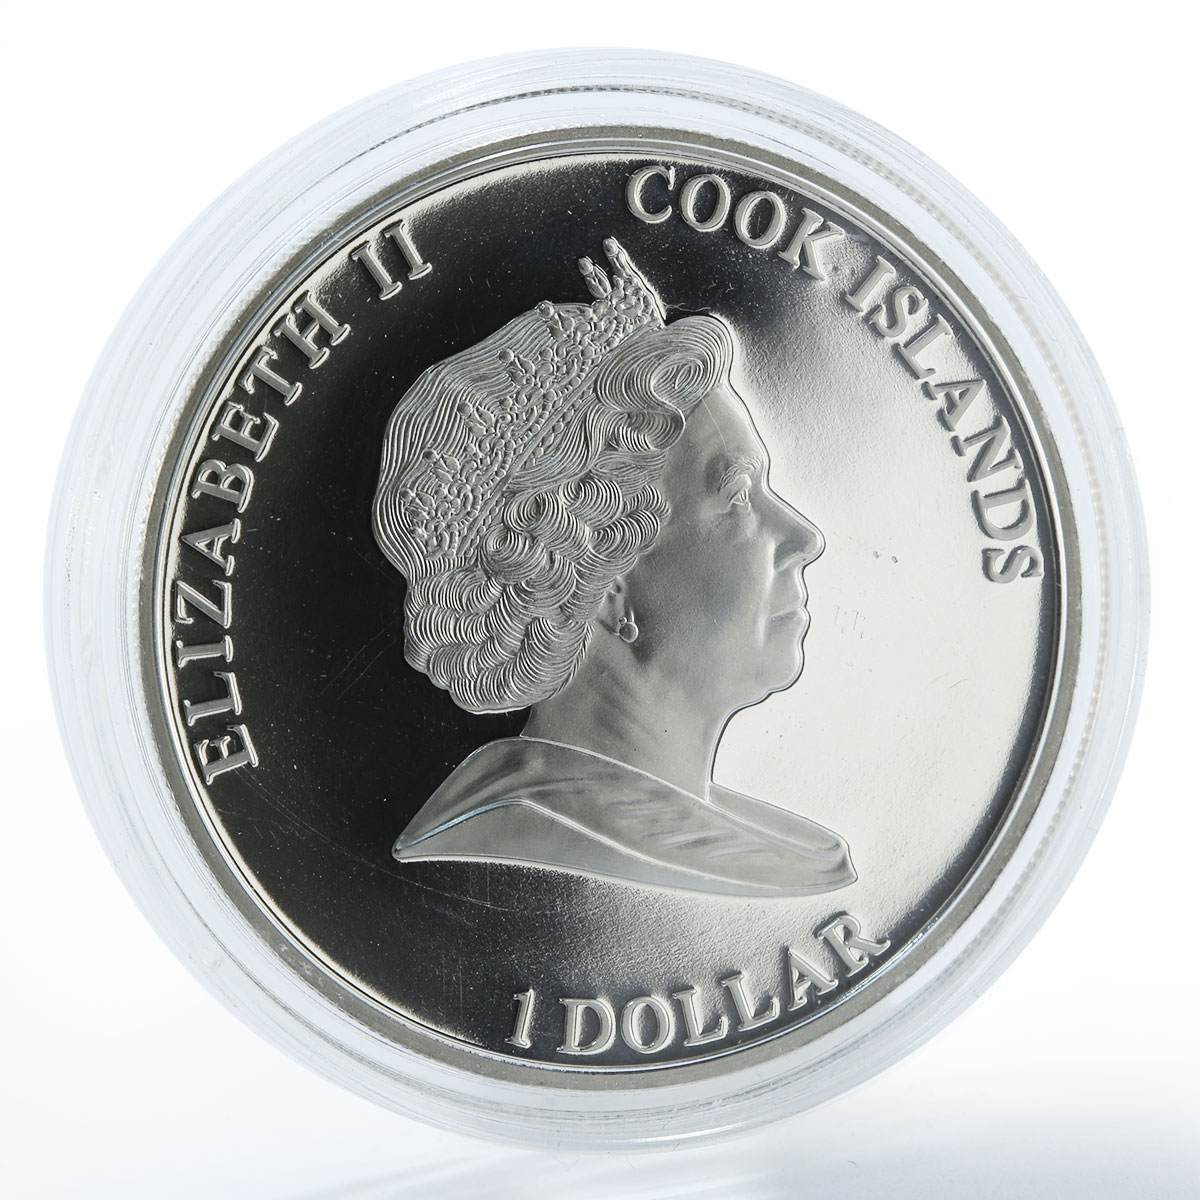 Cook Islands 1 dollar HMB Endeavour James Cook 1728-1779 silver Proof coin 2009